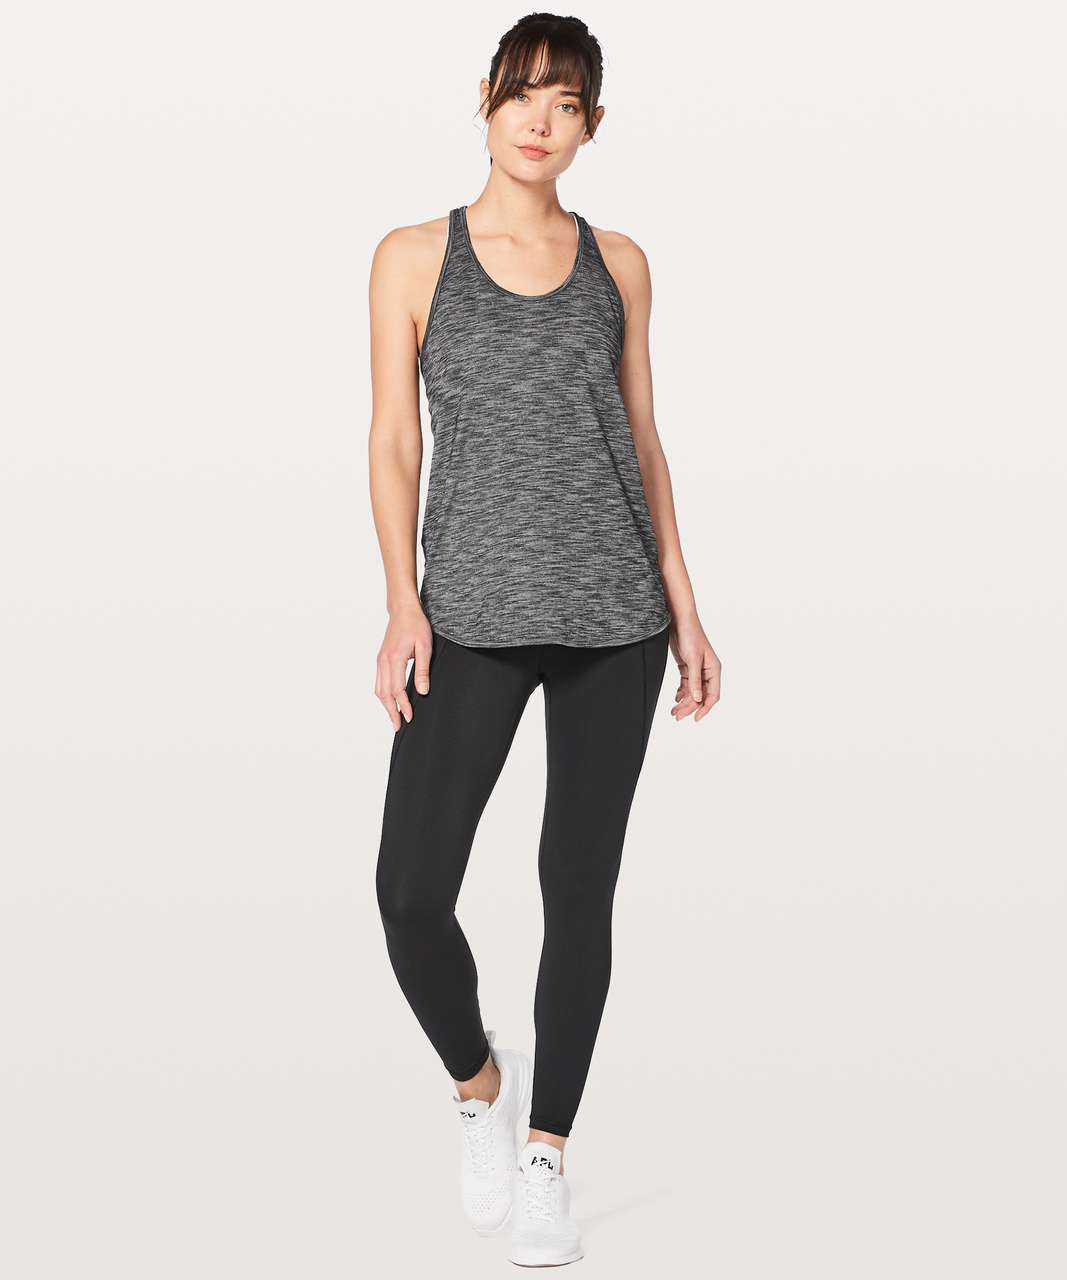 Lululemon Essential Tank - Heathered Black (Third Release)